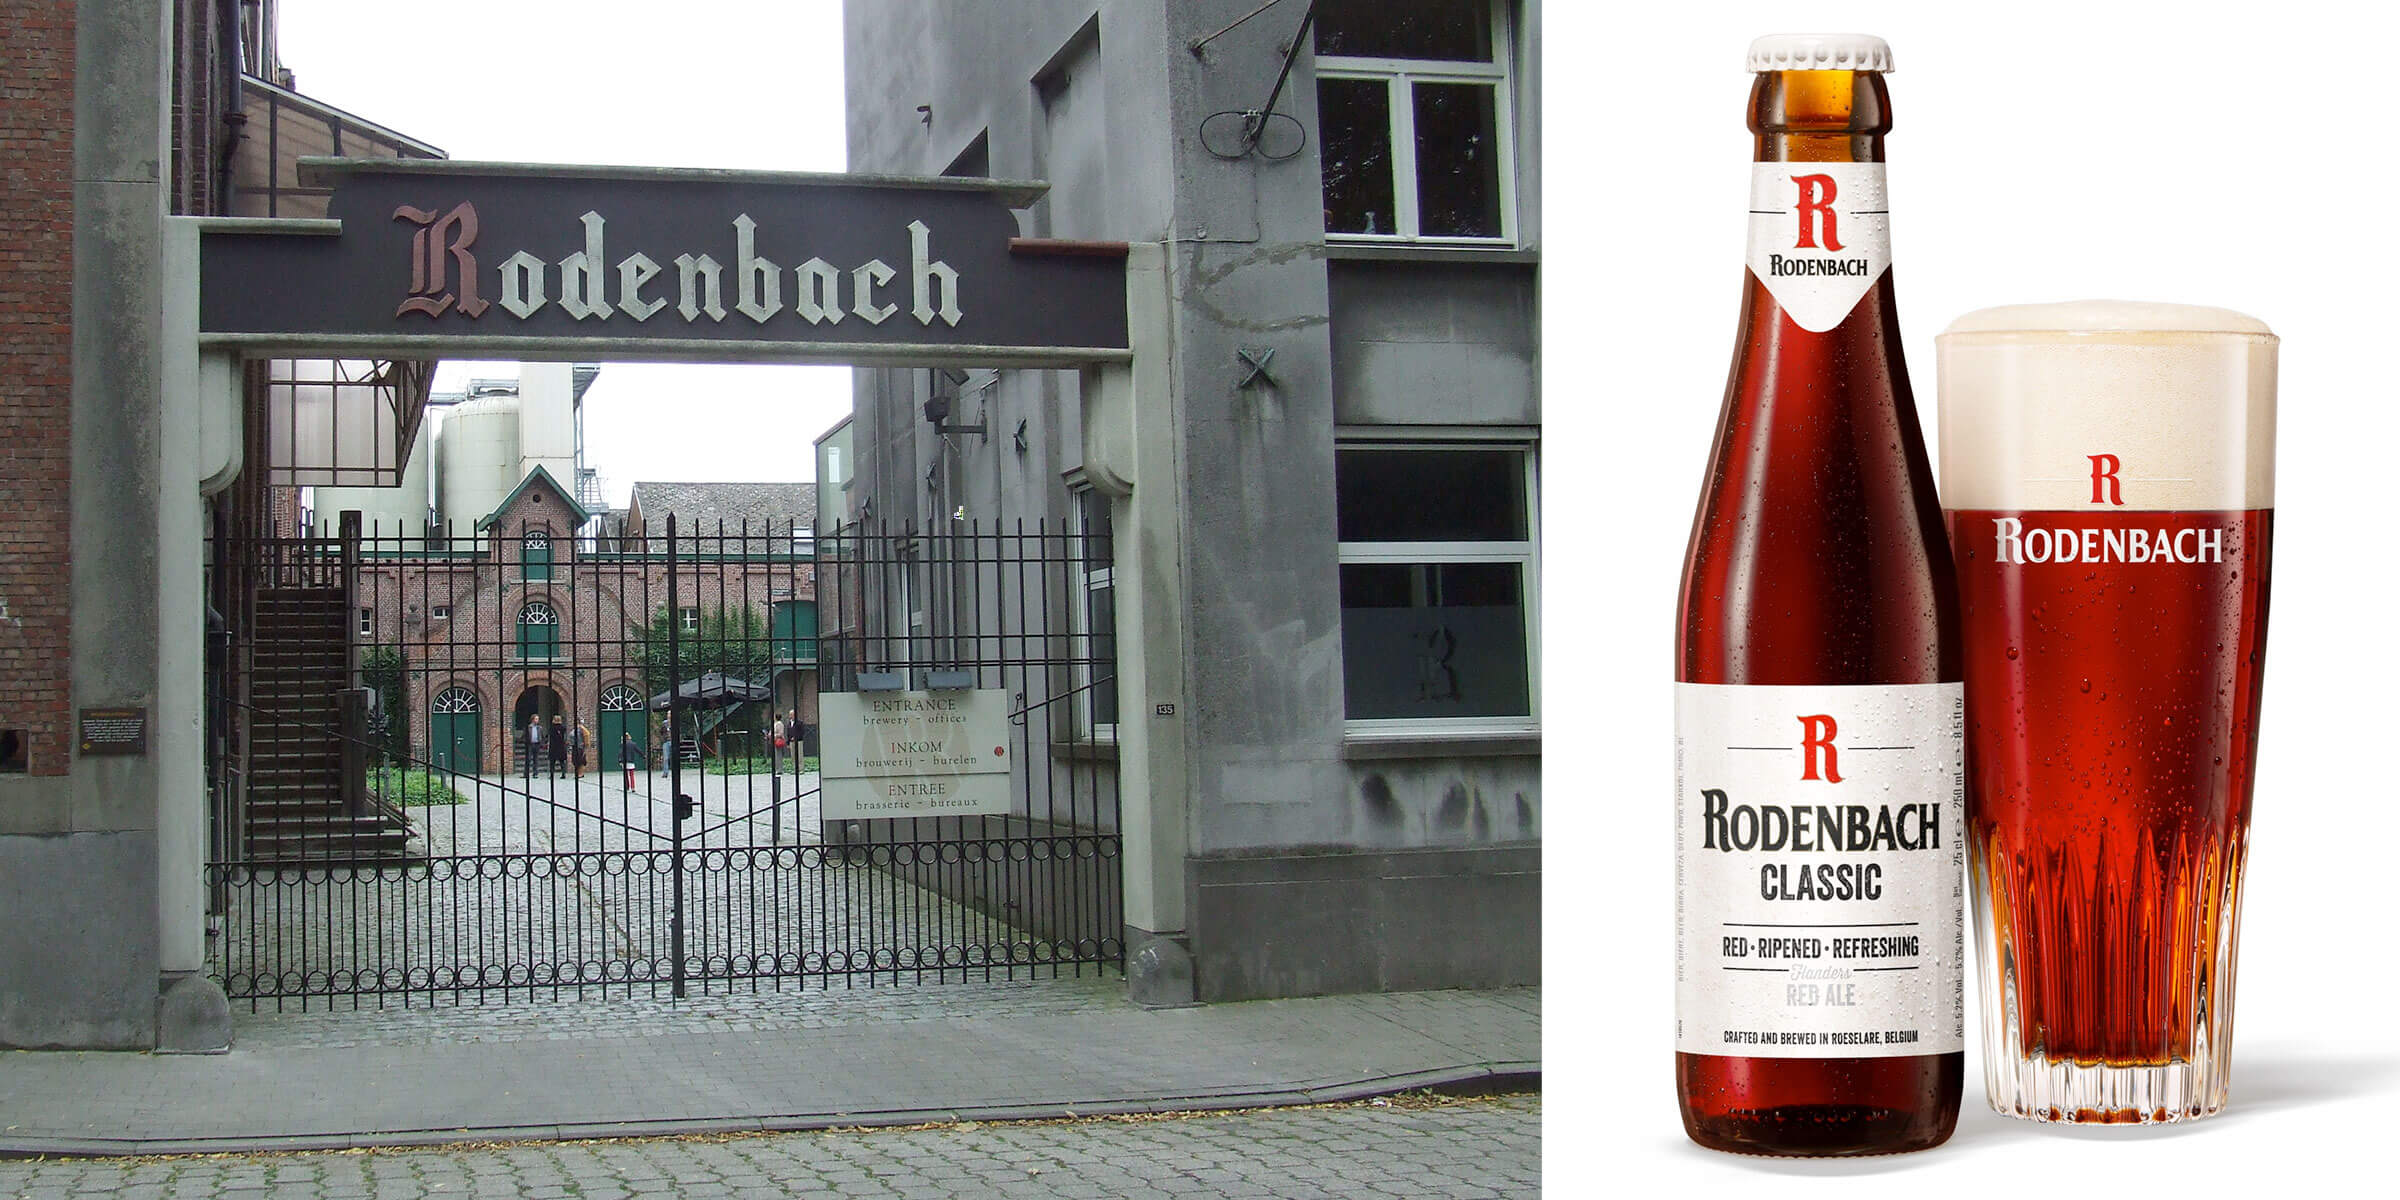 Brouwerij Rodenbach, one of the most revered breweries of sour ales, announced that its original Rodenbach Classic, available in cans throughout the US.